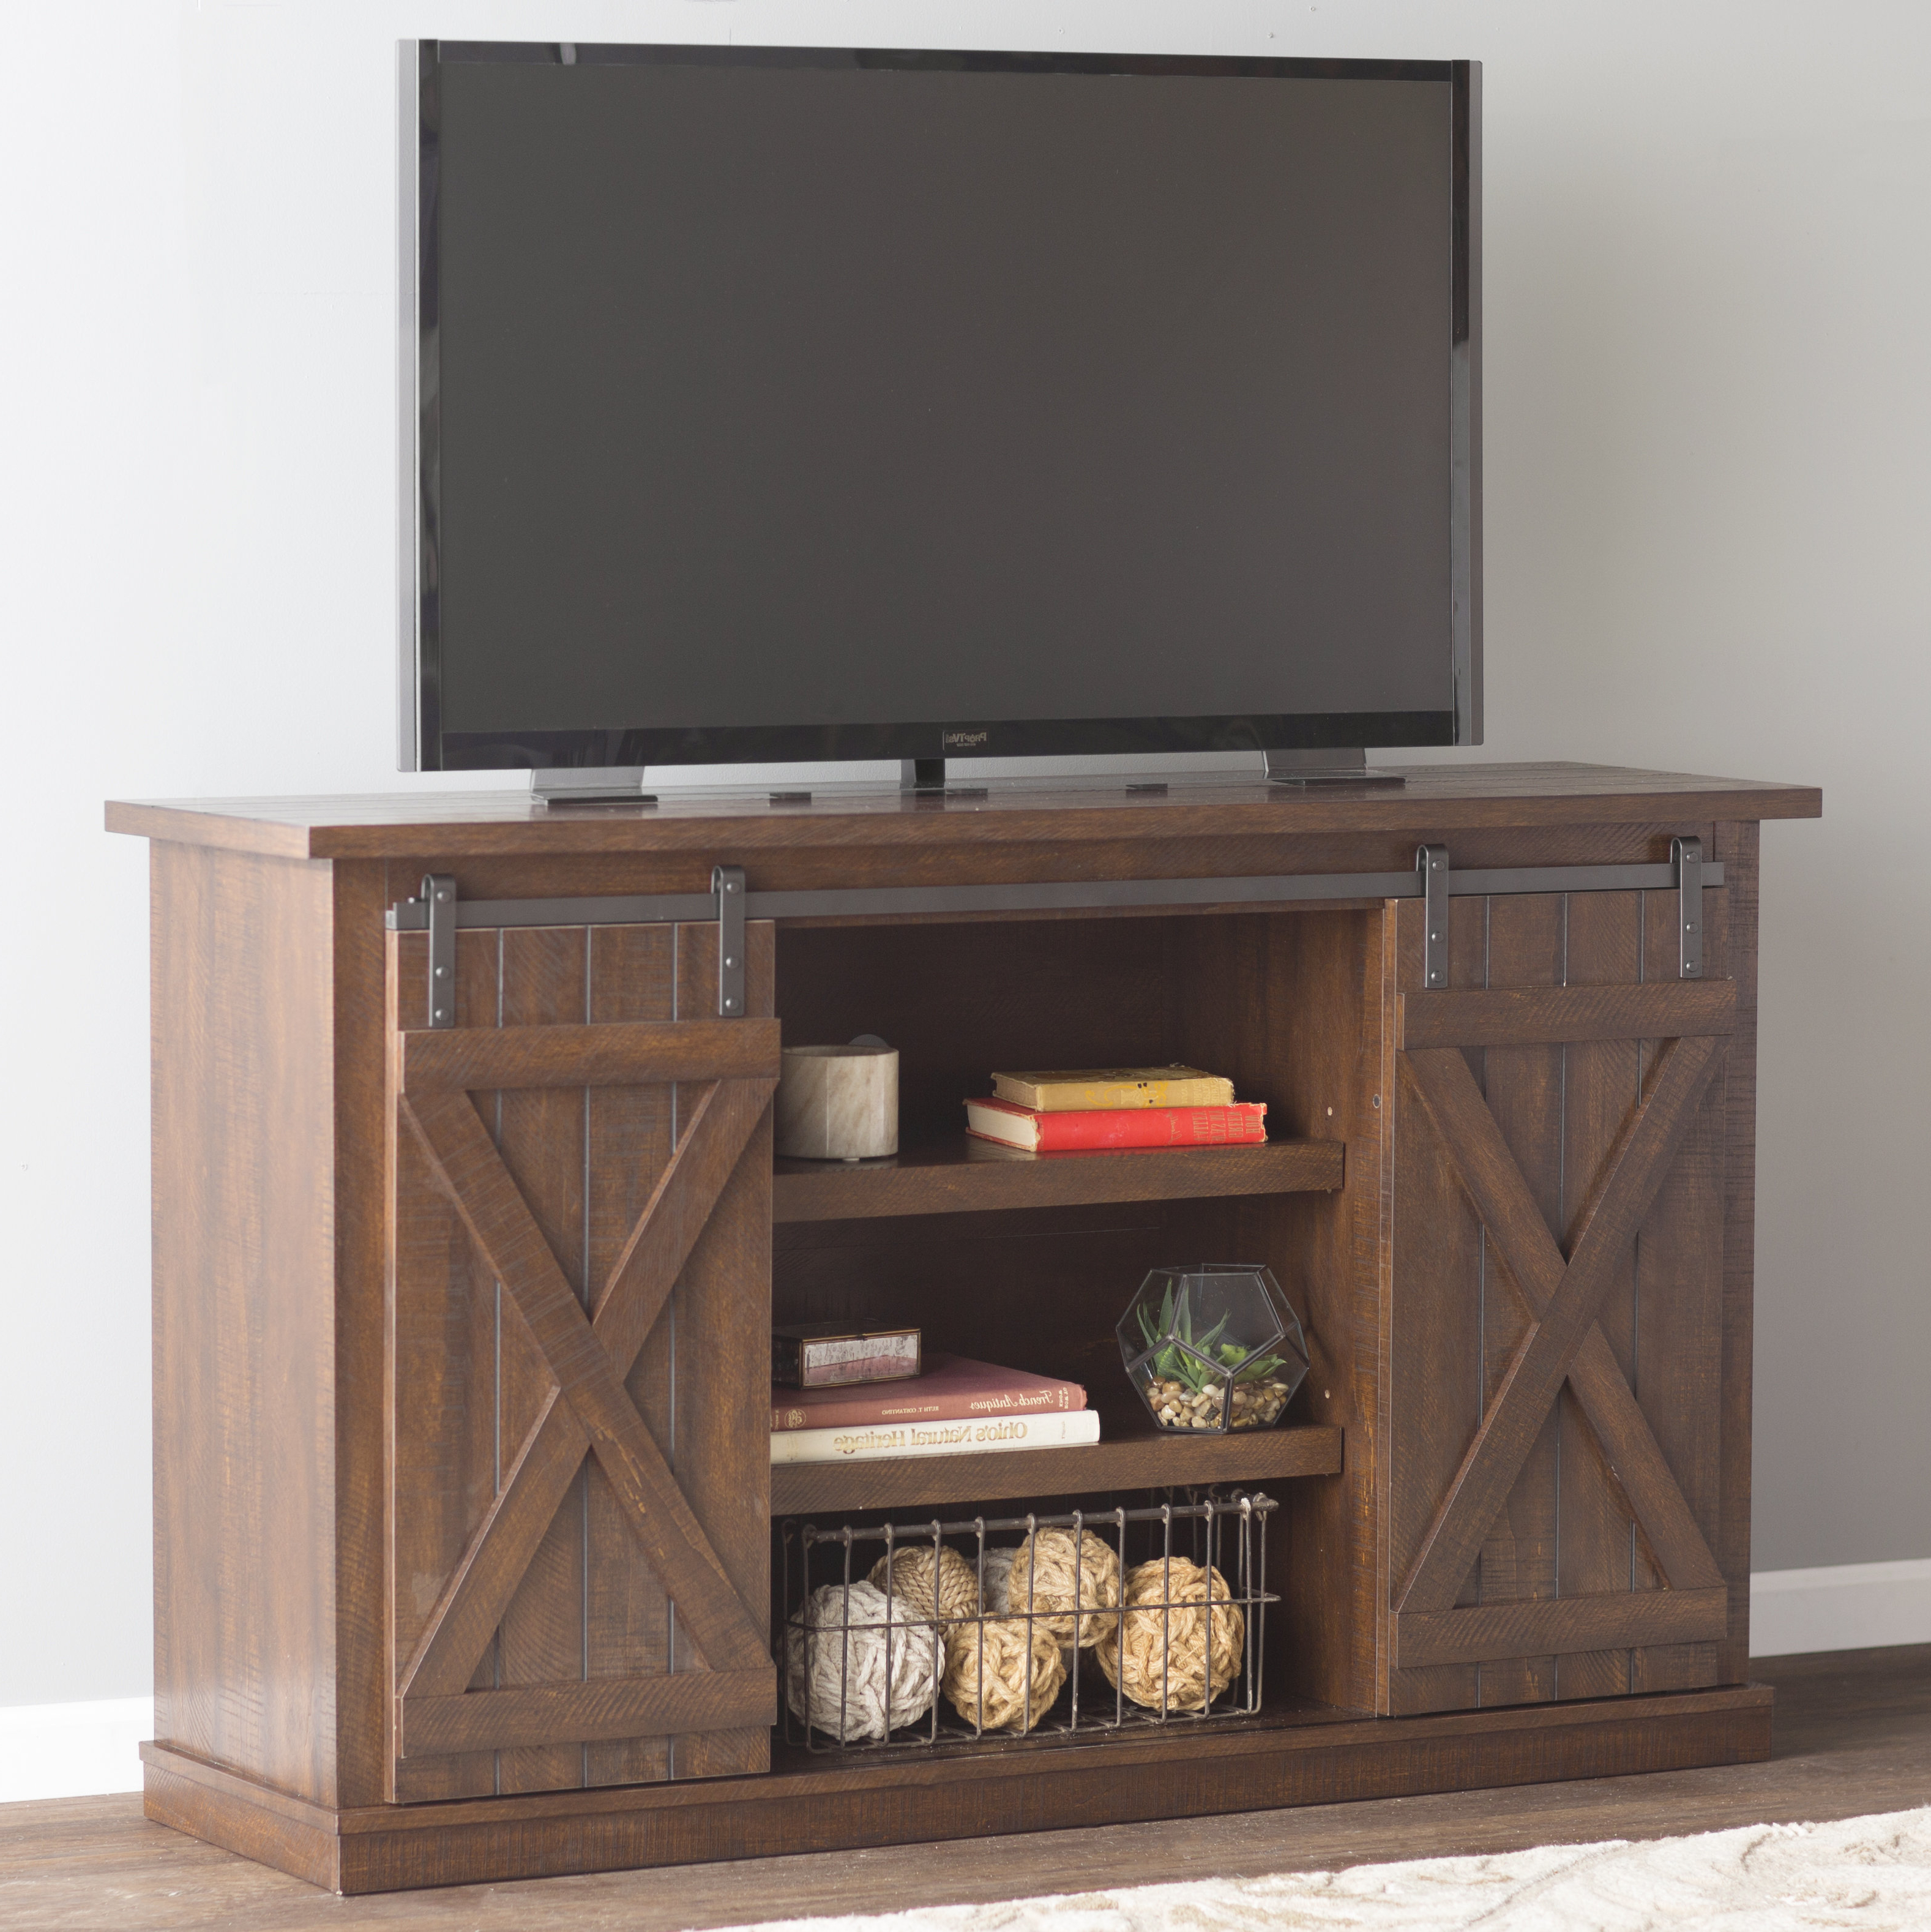 Loon Peak | Wayfair Intended For Noah Rustic White 66 Inch Tv Stands (Gallery 5 of 20)